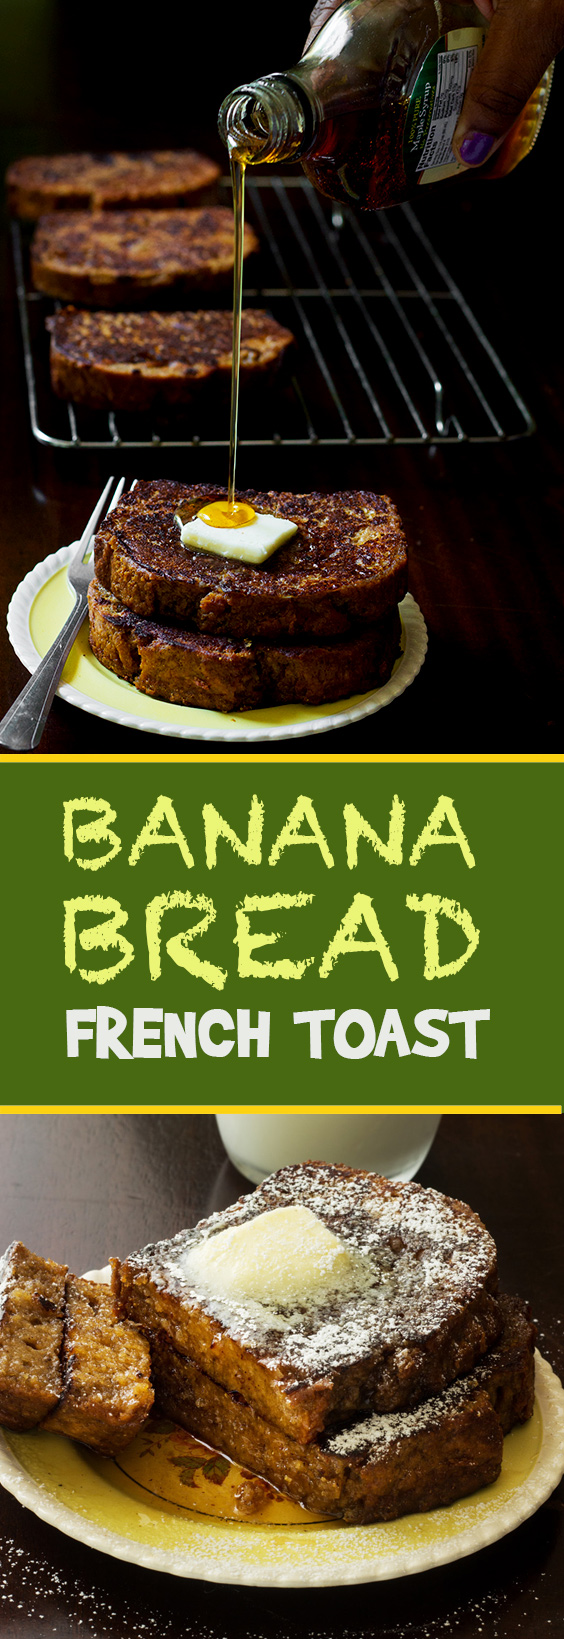 Two breakfast favorites join forces to become one epic bite of yum. Banana bread french toast has all the banana flavor with the crunch of fresh toast.